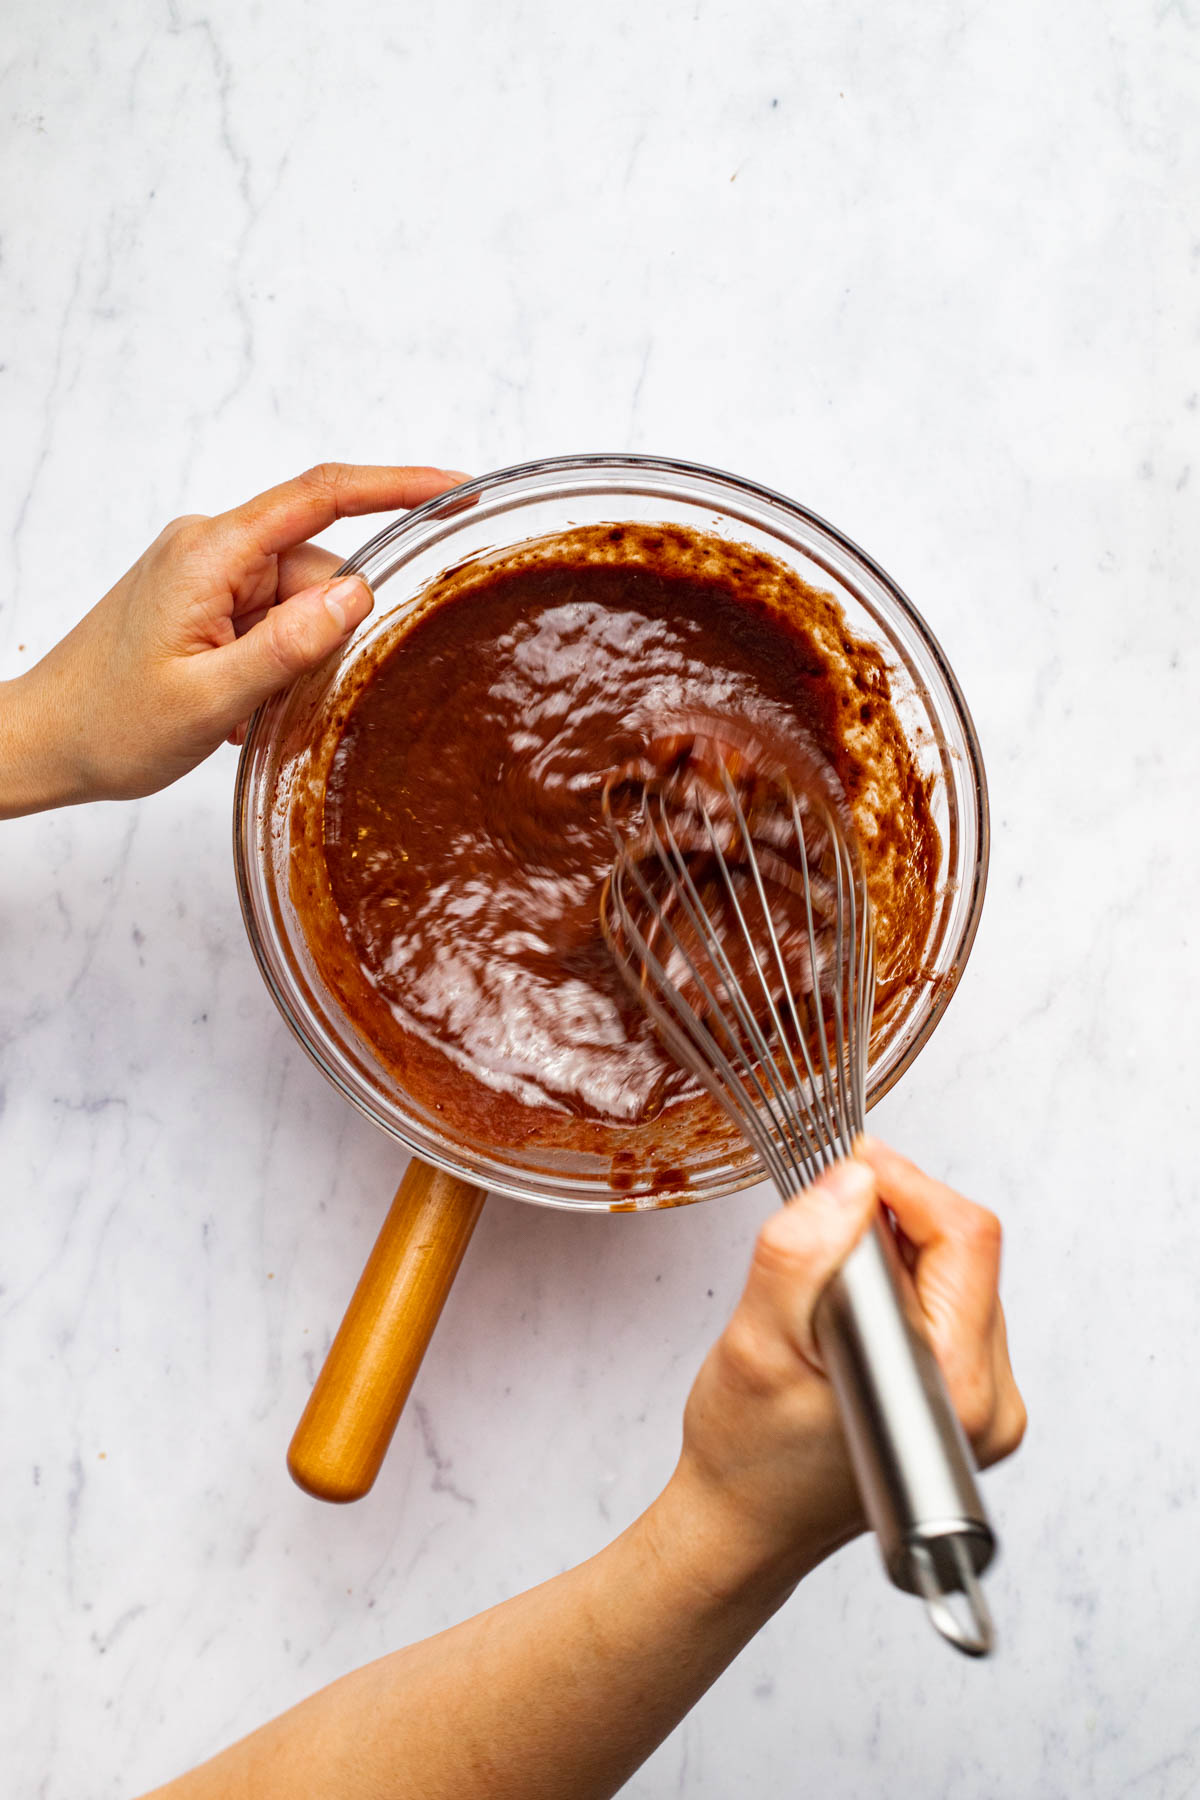 A hand whisking melted chocolate in a glass bowl.